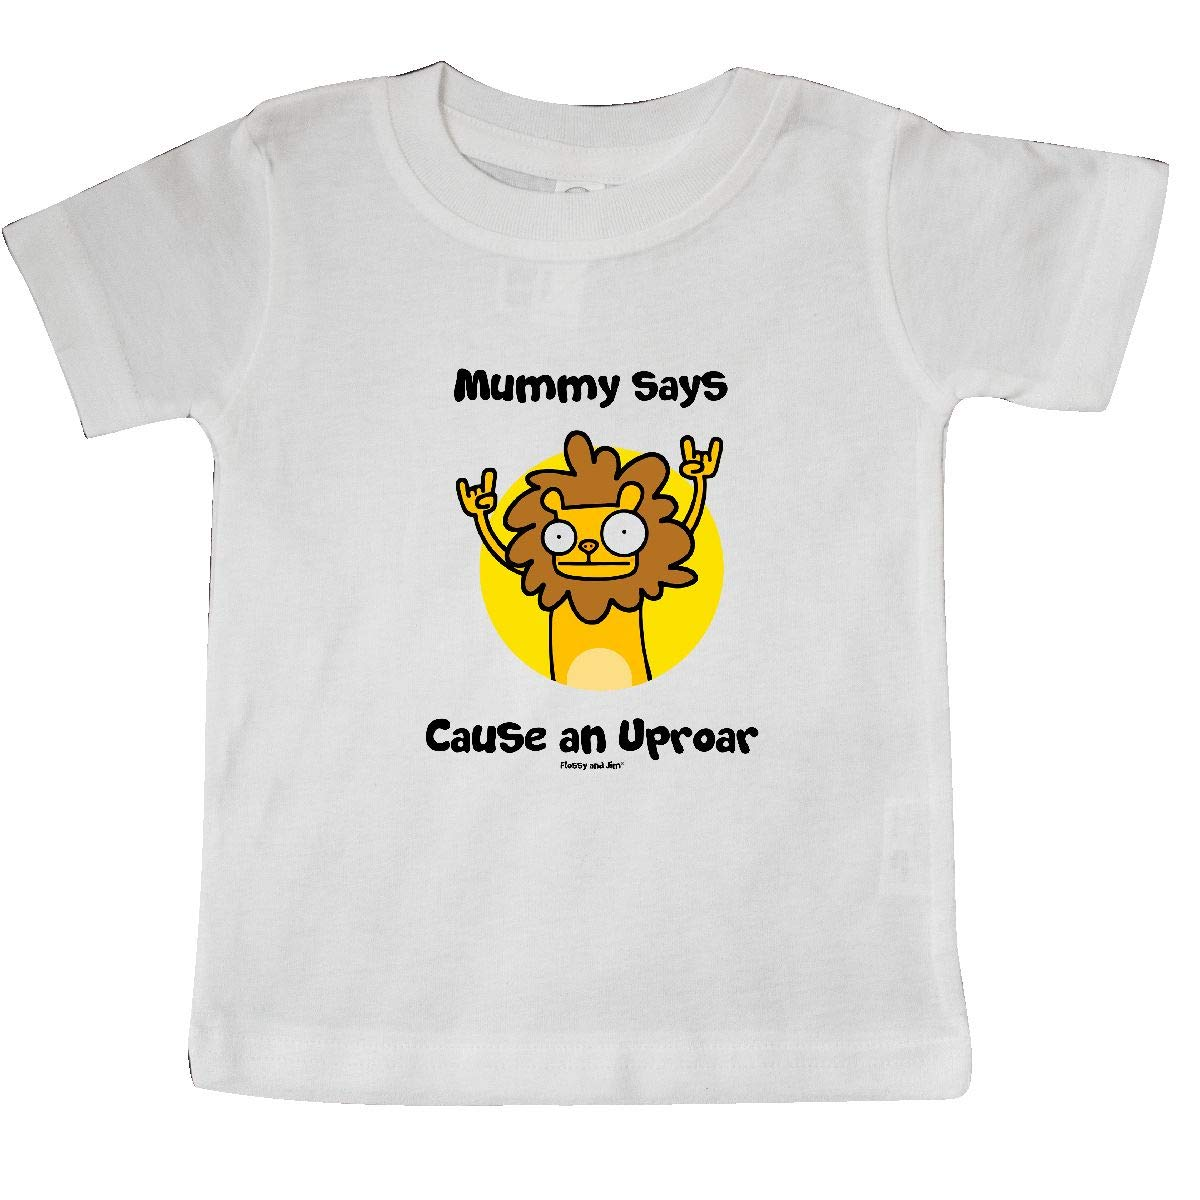 inktastic Mummy Says Cause an Uproar Baby T-Shirt Flossy and Jim